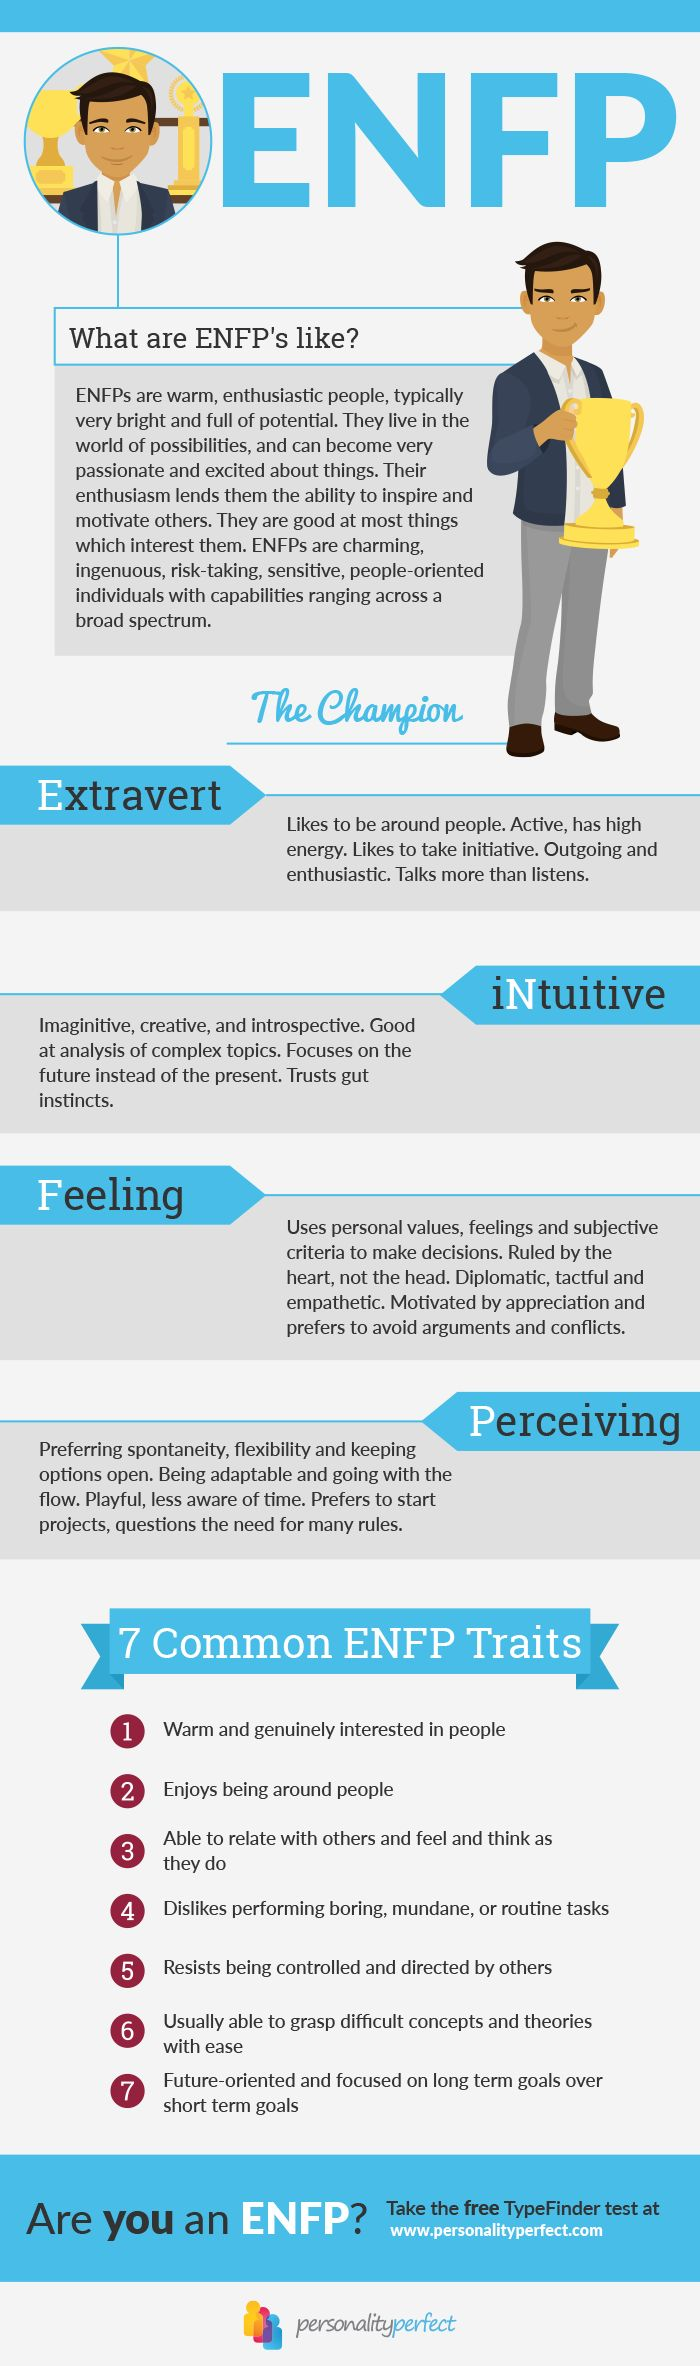 What are ENFP's like? Discover the 7 most important ENFP Traits - Myers Briggs Personality Types